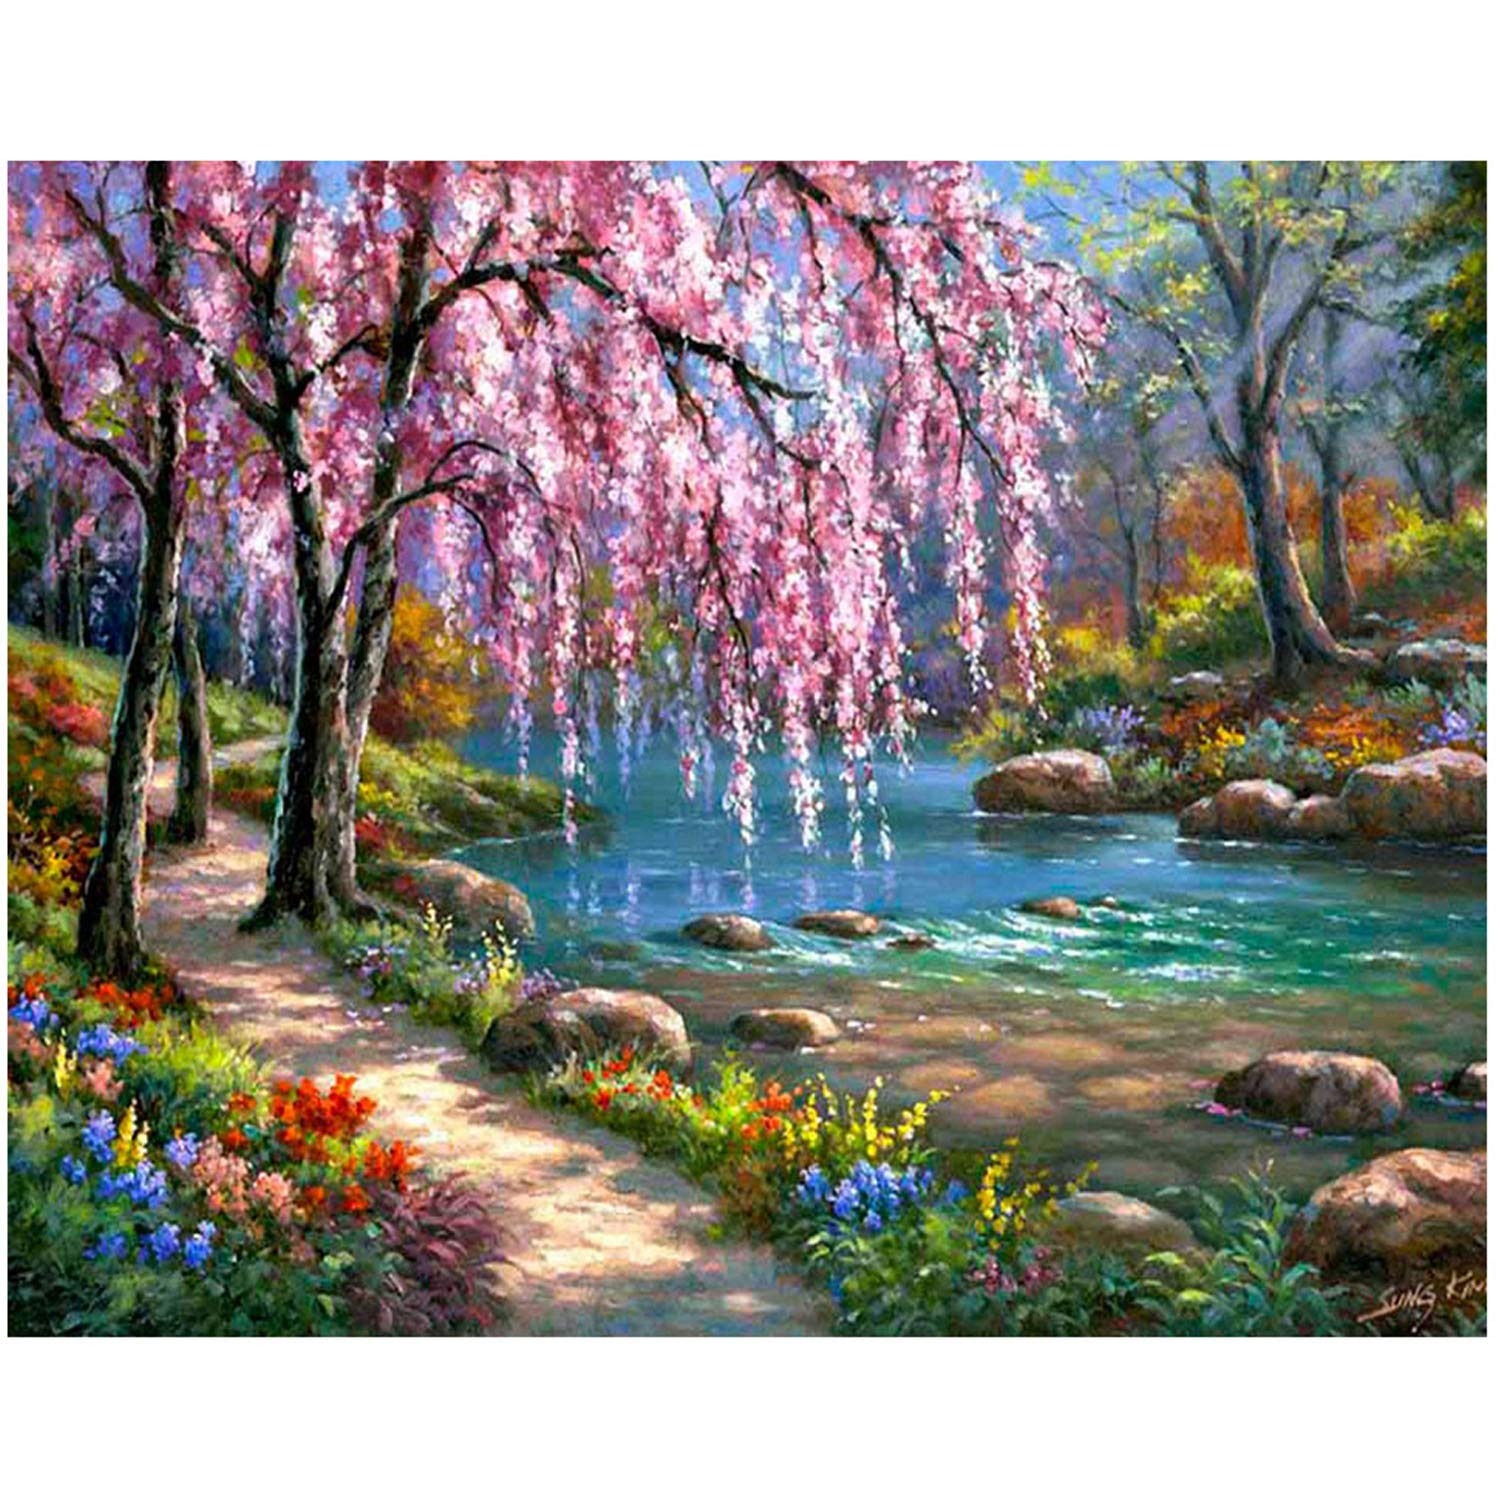 ANMUXI 5D Diamond Painting Kits Full SQUARE Drills for Adults 20X30CM Pink Tree Landscape Scenery Paint With Diamonds Art for Stress-relief /& Home Decor